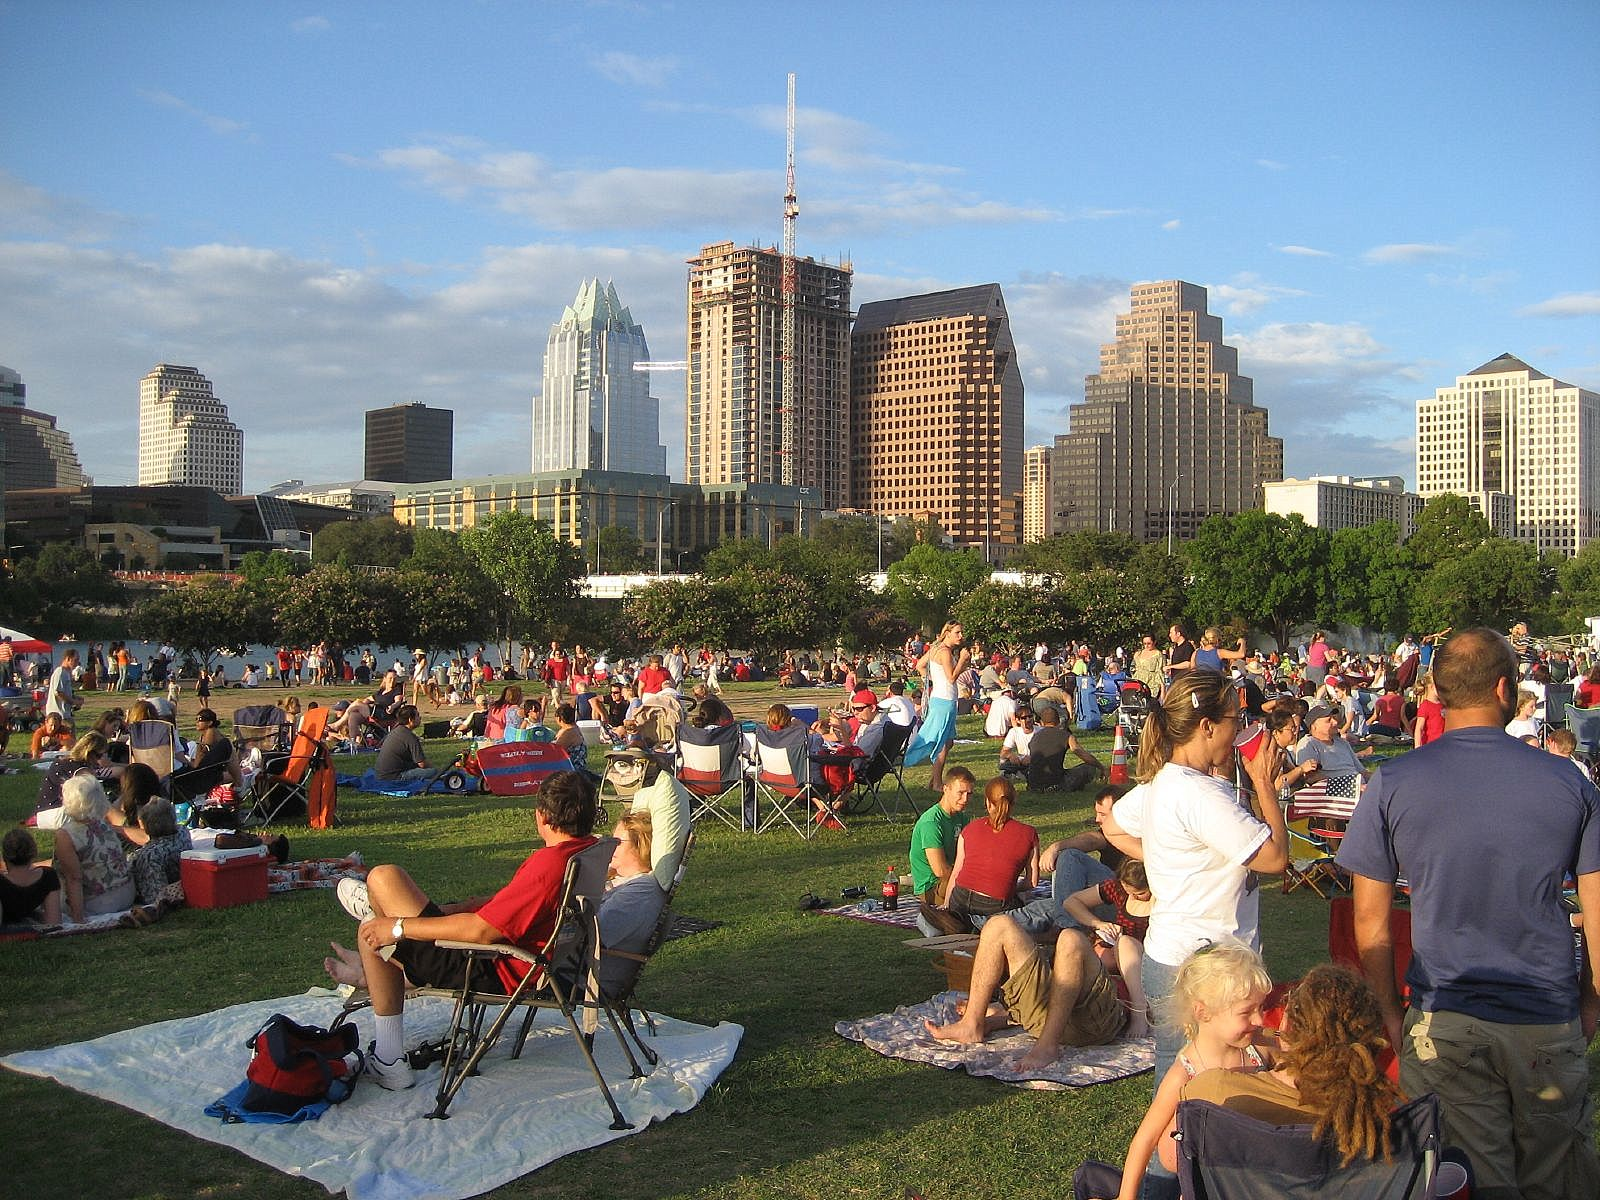 Auditorium Shores in Austin,TX